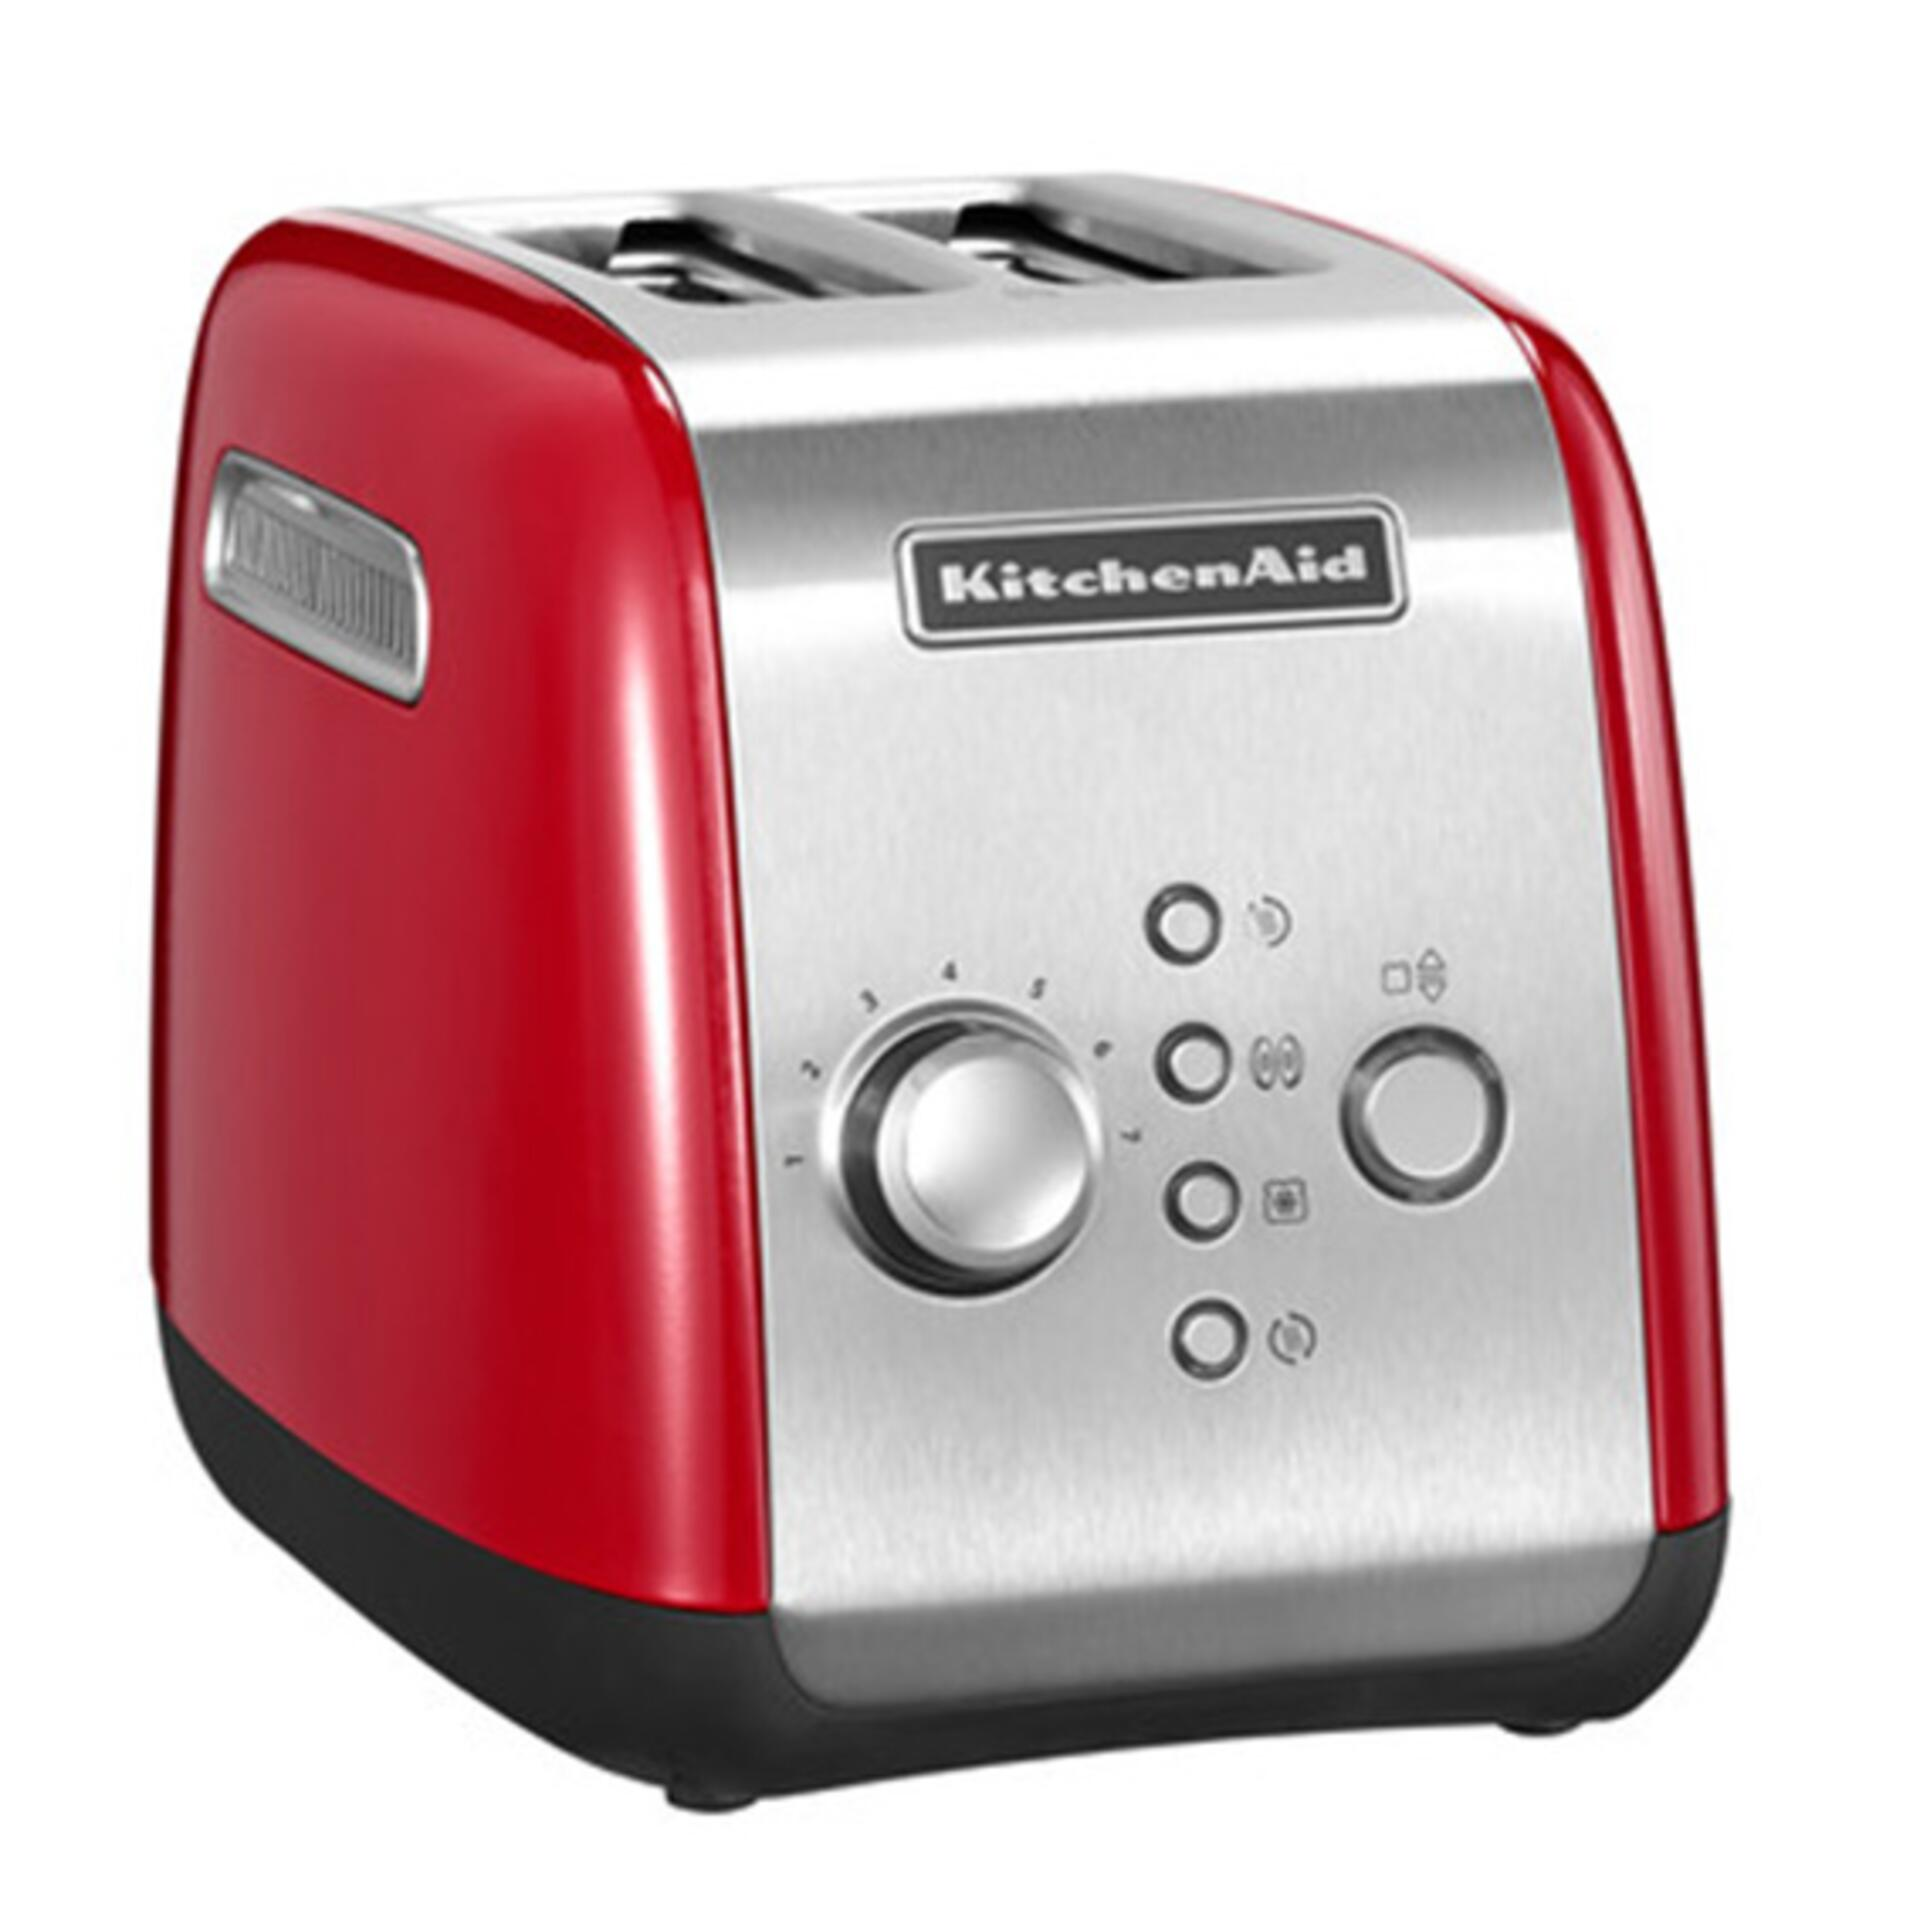 KitchenAid Toaster Empire Red 5KMT221EER